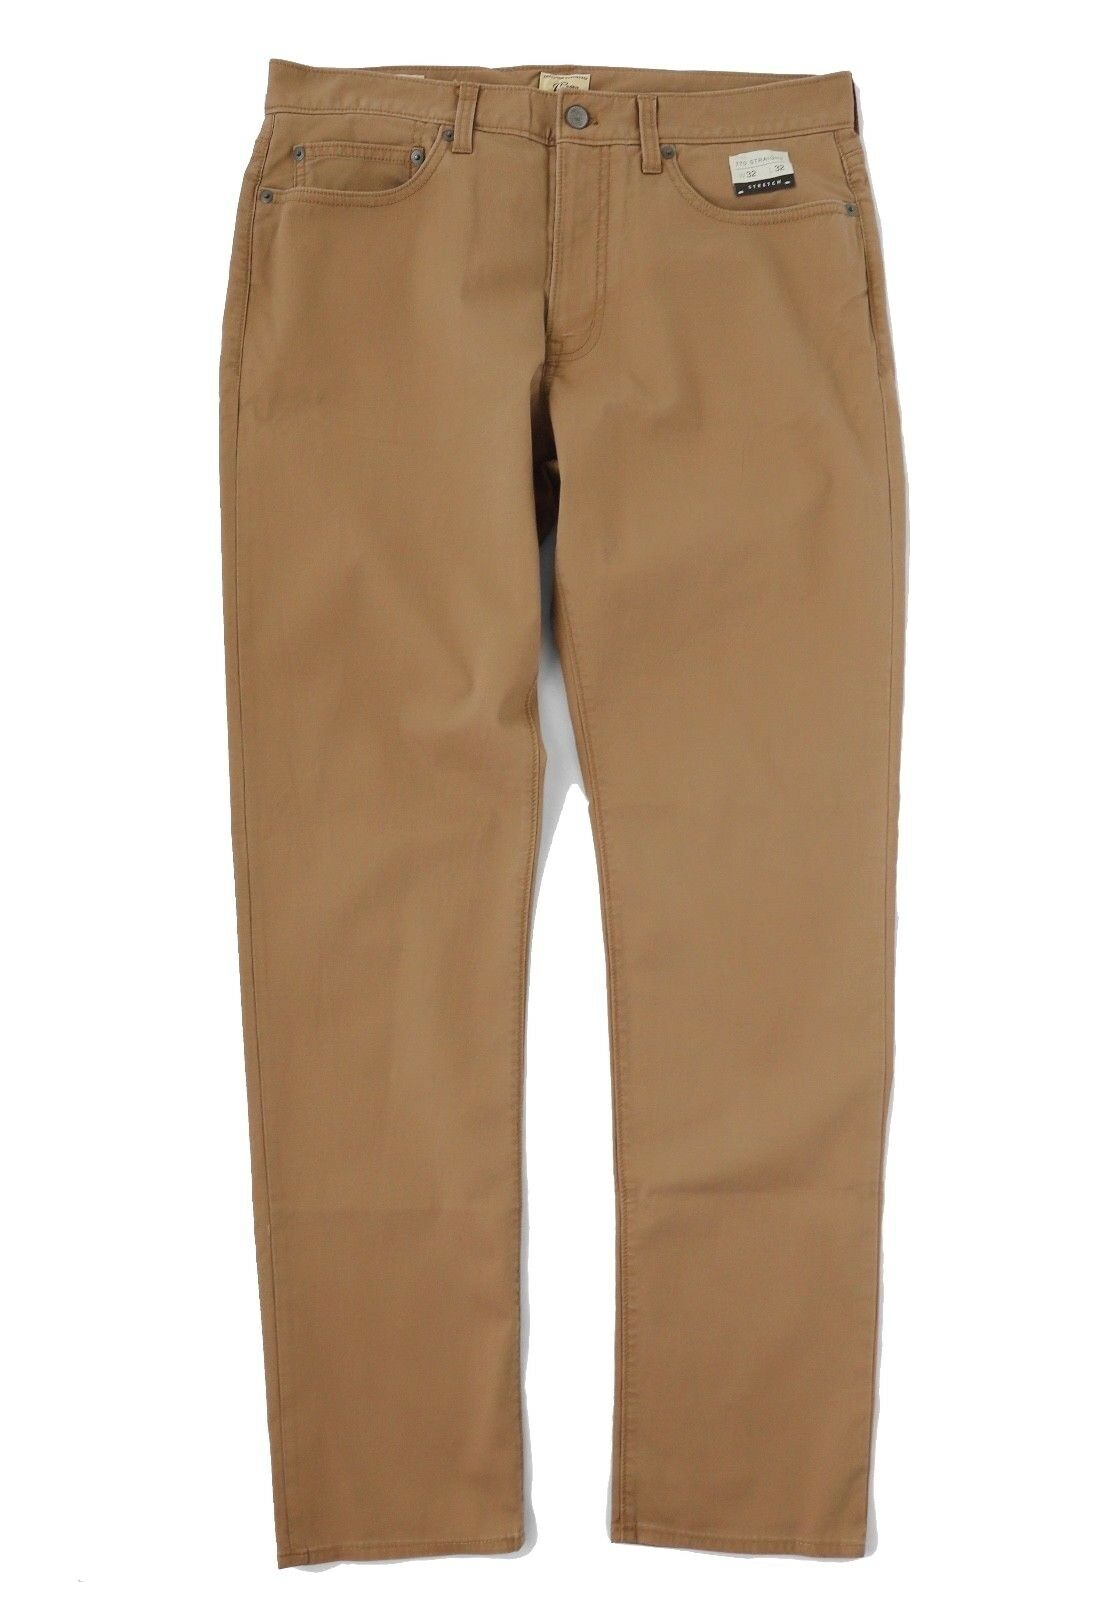 J.Crew Men's 34 32 - Light-Wt Dark Khaki 770 Straight Fit Corduroy Pants H7168